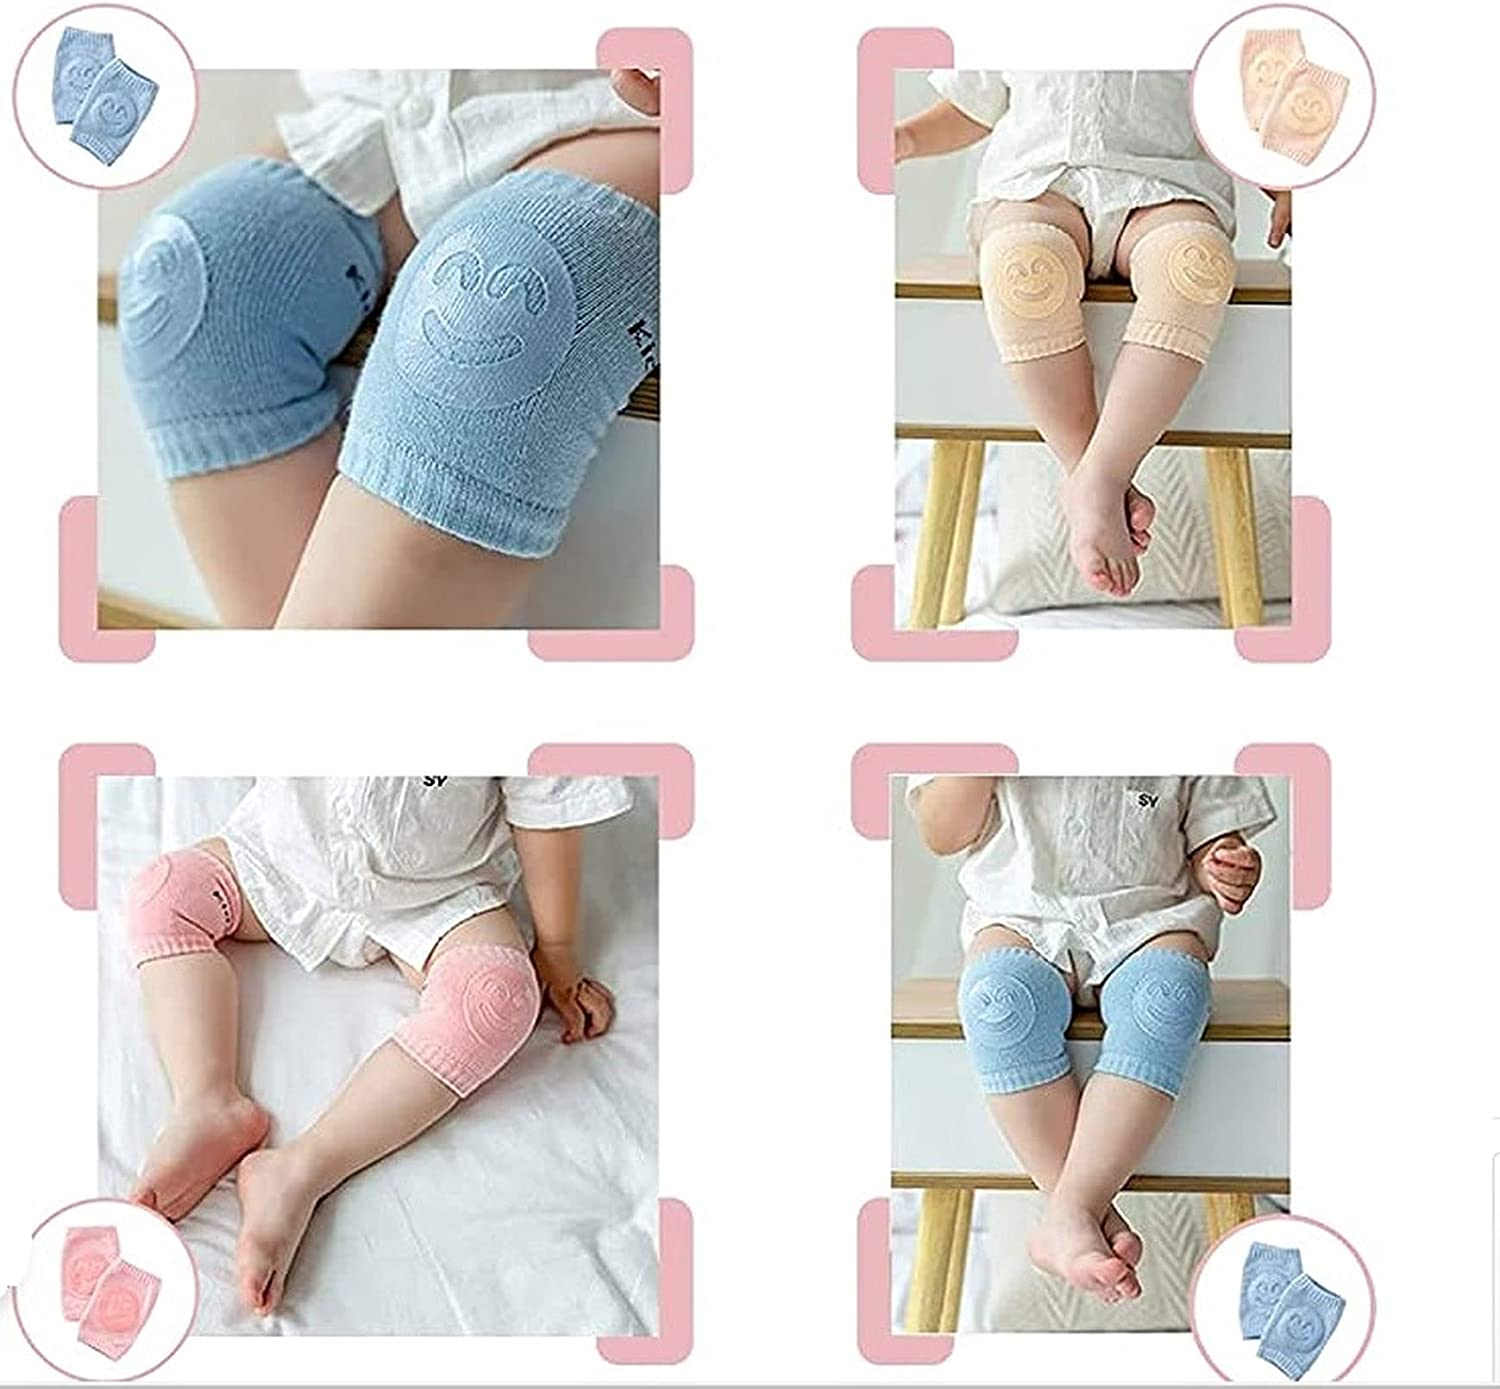 Anti-Slip Baby Crawling Knee brace/Unisex Baby Toddlers Knee pads crawling support protector knee pads